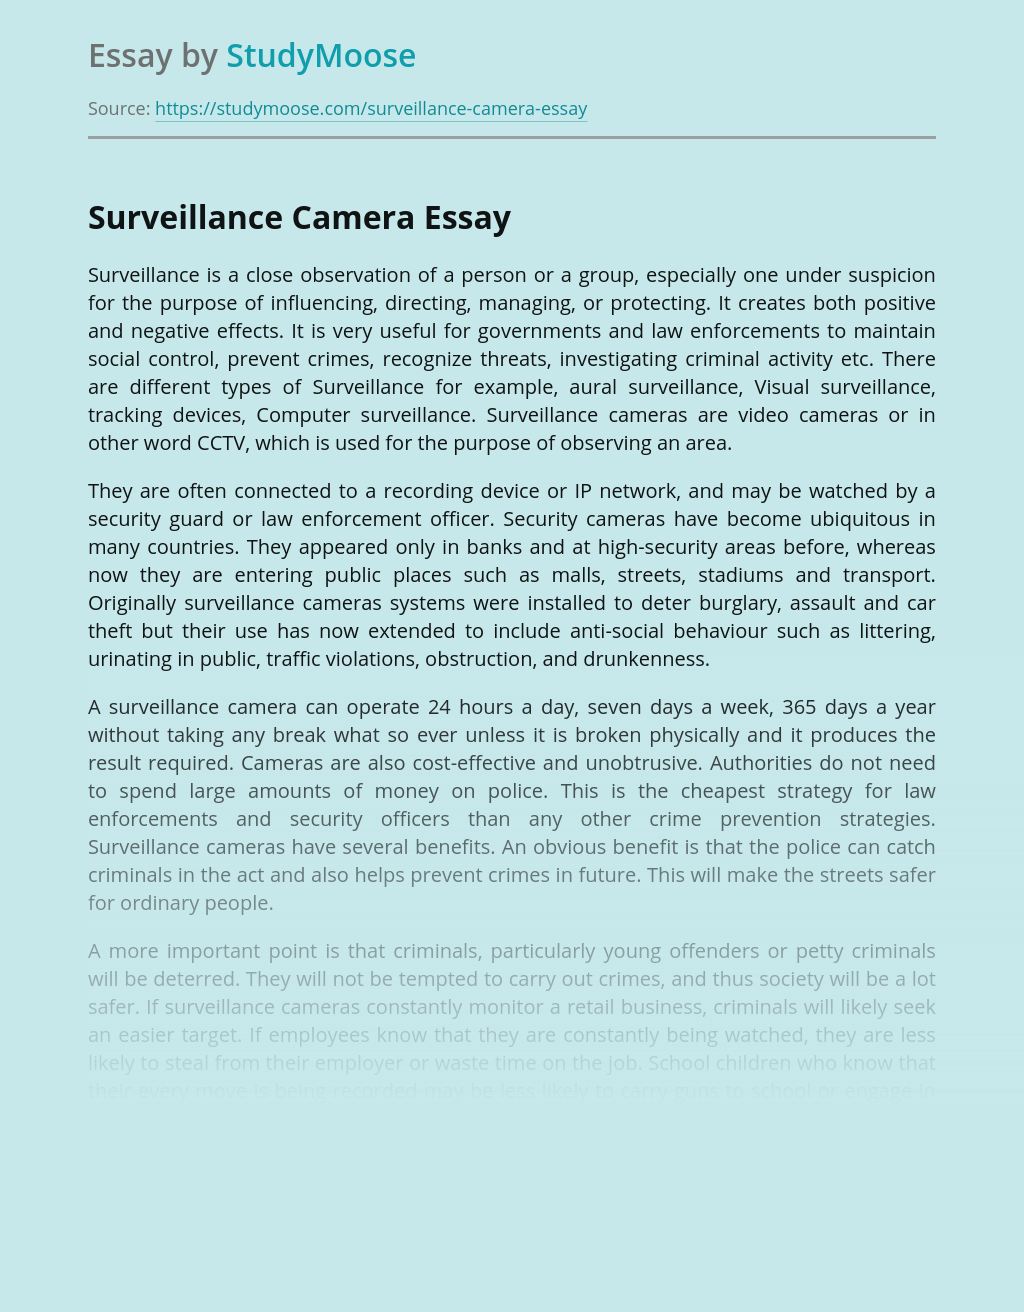 Surveillance privacy essay top article proofreading website for college